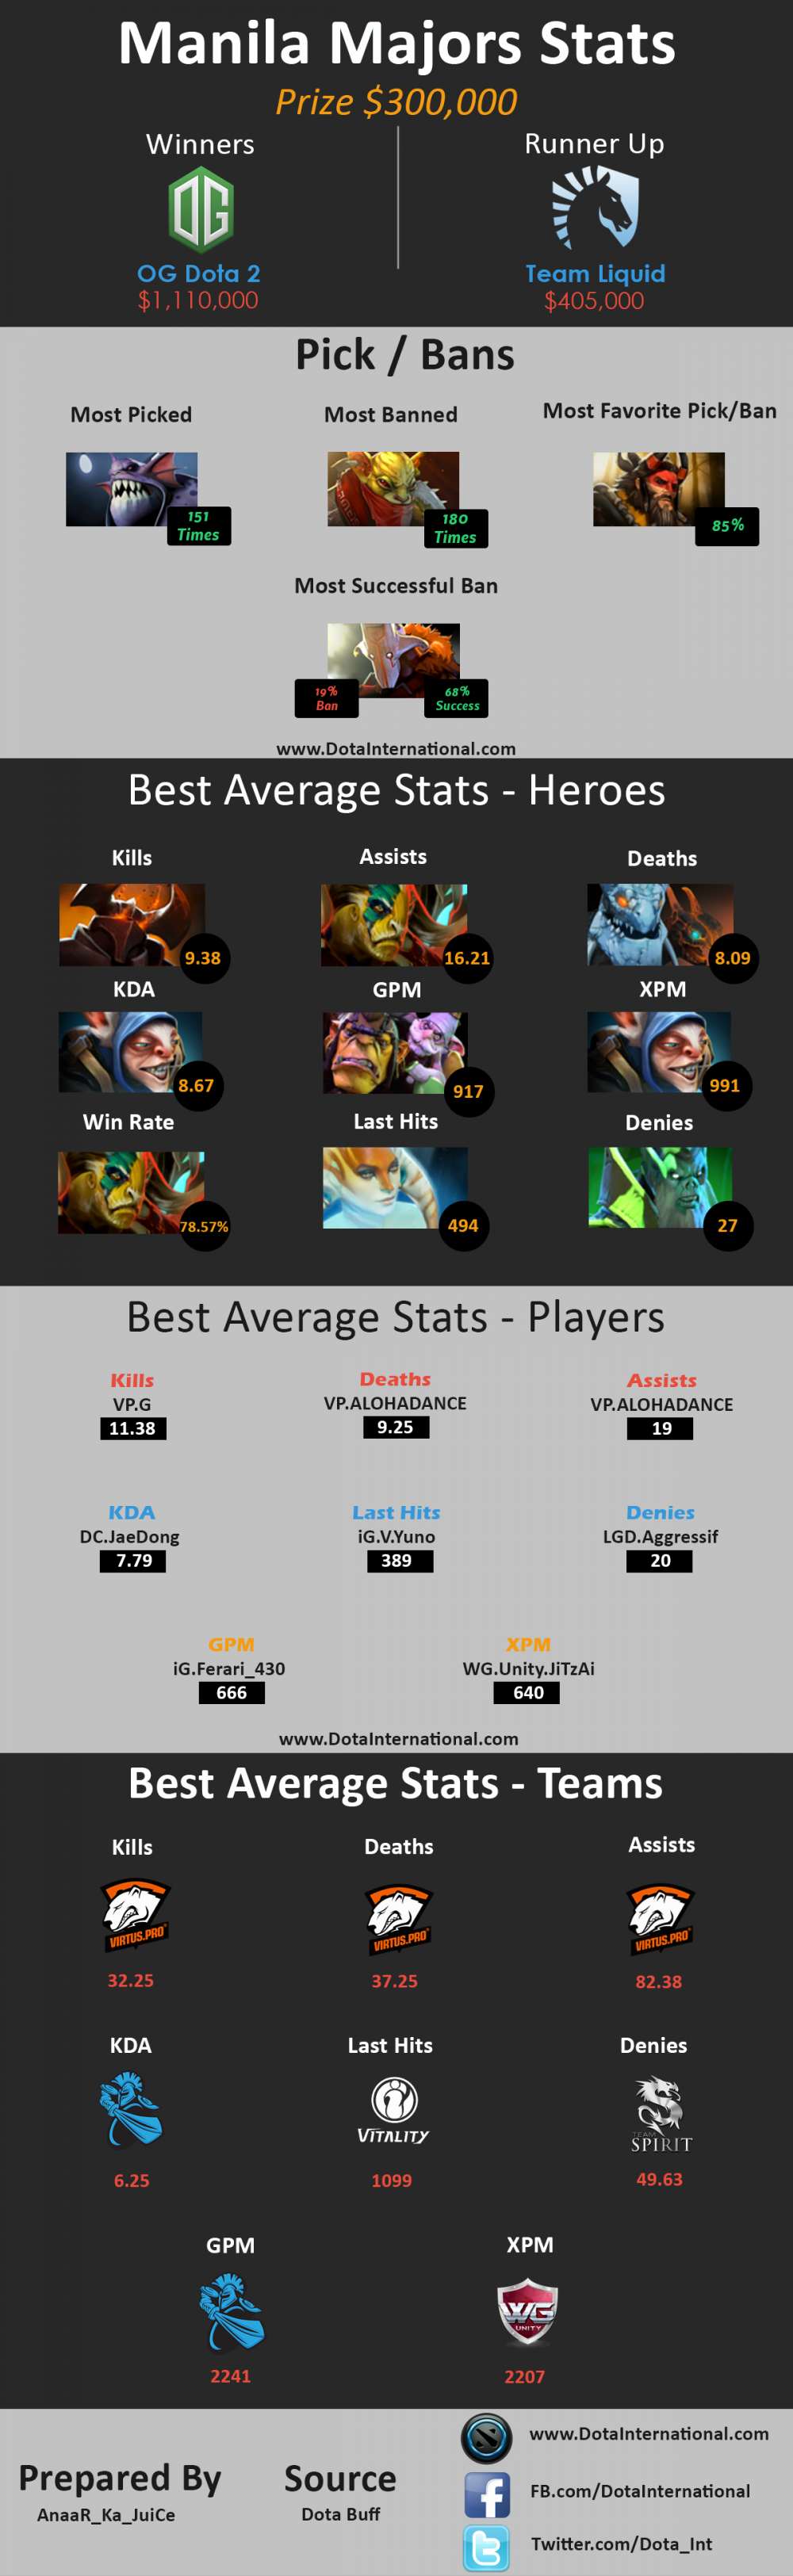 Infographic Manila Major by Dota International